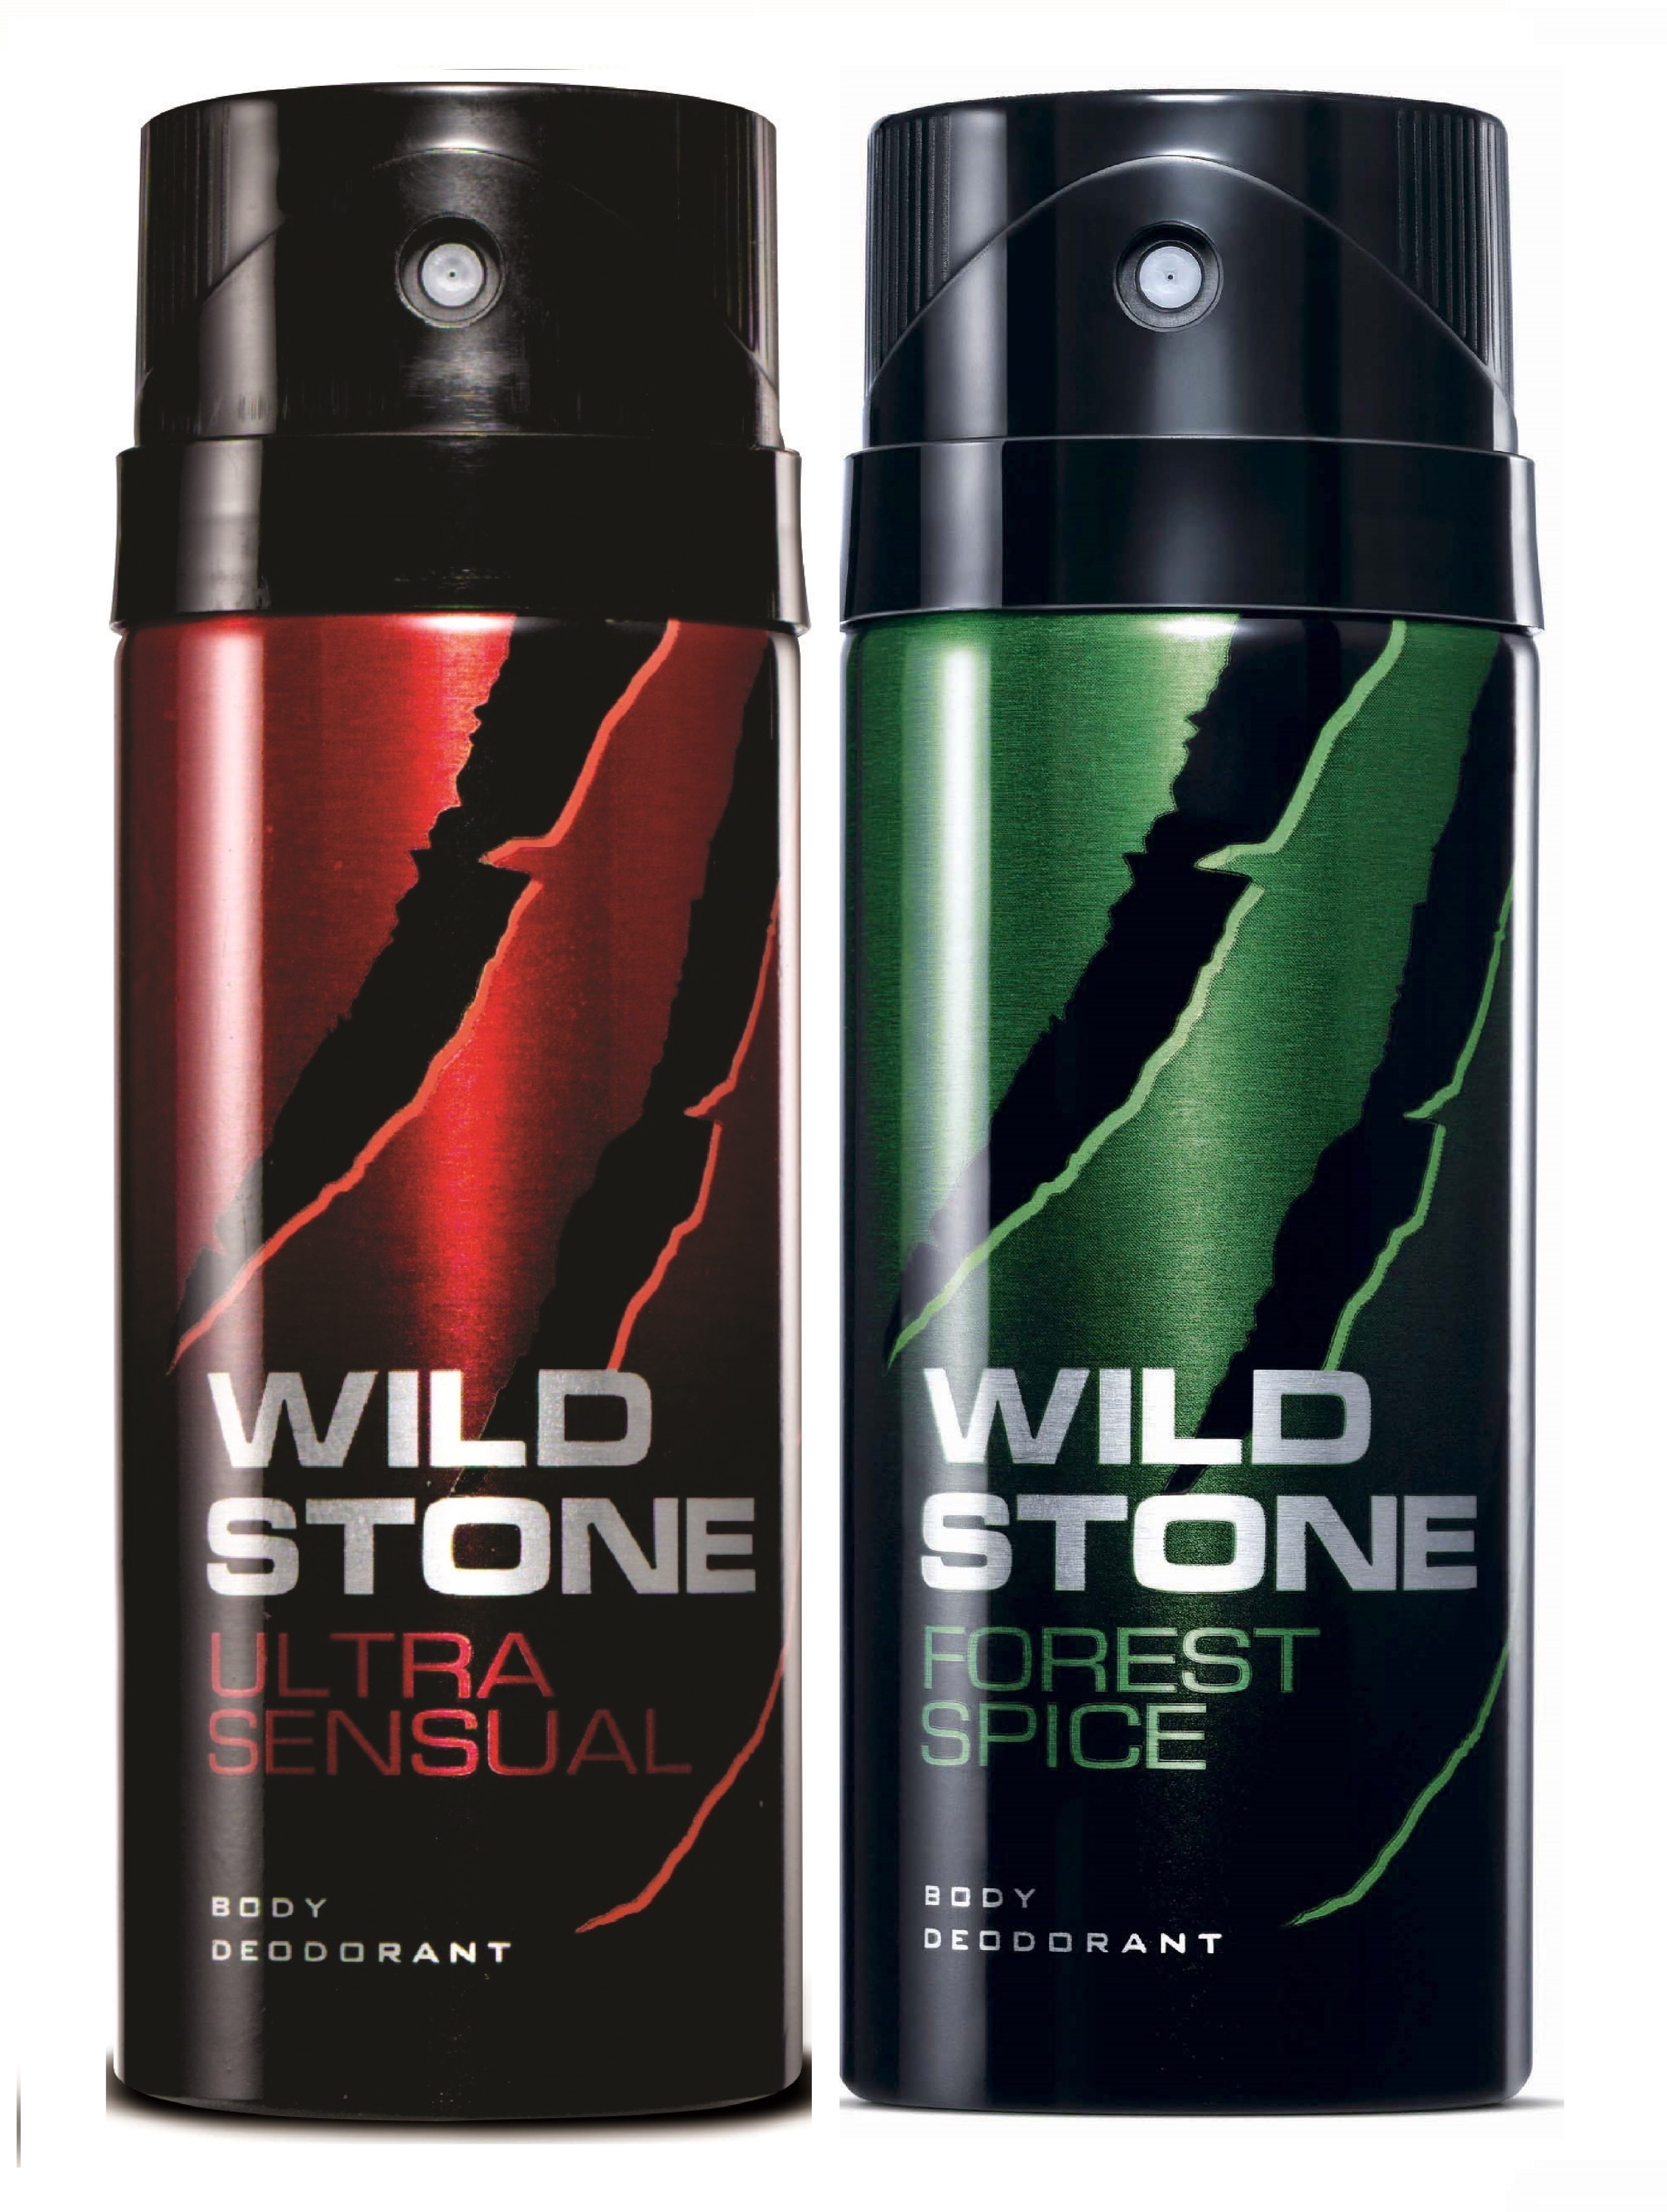 Wild Stone Ultra Sensual & Forest Spice Body Deo - 150 ml each (Pack of 2)